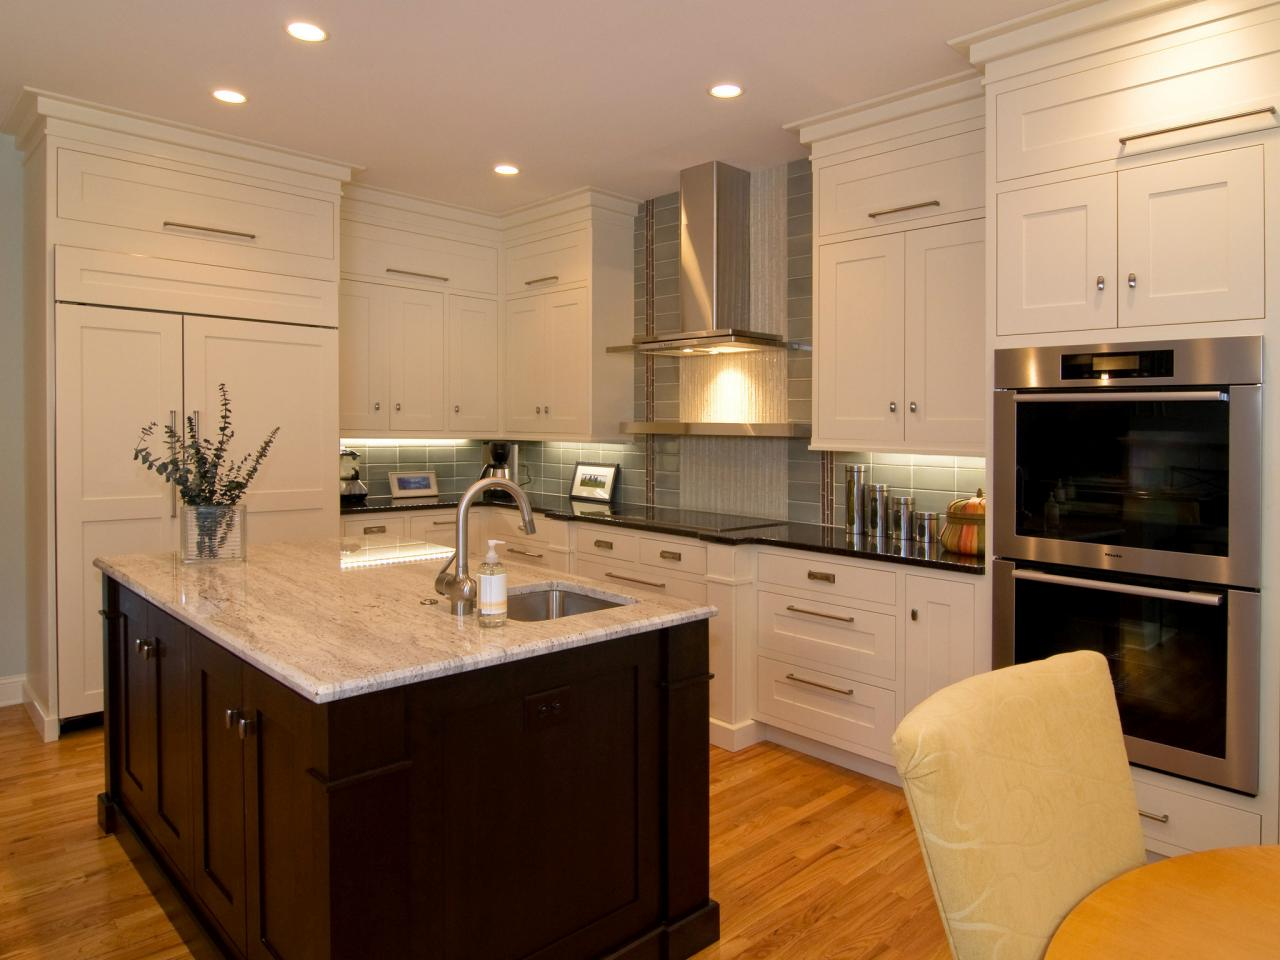 ci-mb-hargrove-shaker-kitchen-lead-image_4x3-jpg-rend-hgtvcom-1280-960